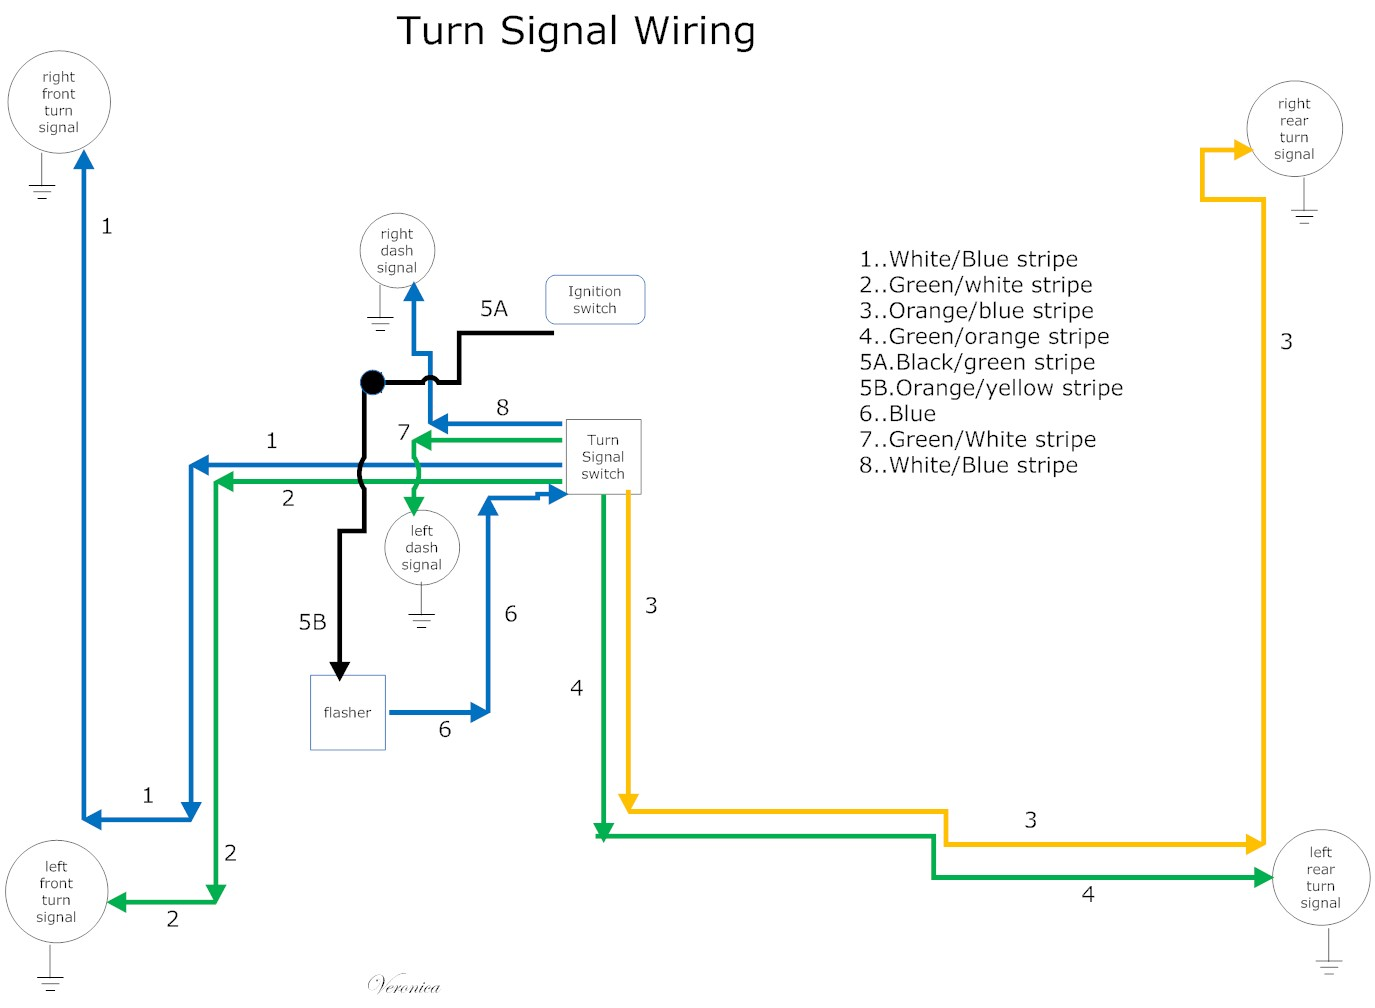 Turn+signal+Wiring turn signal wiring diagram turn signal wiring diagram 05 victory 1965 chevy truck turn signal wiring diagram at gsmportal.co